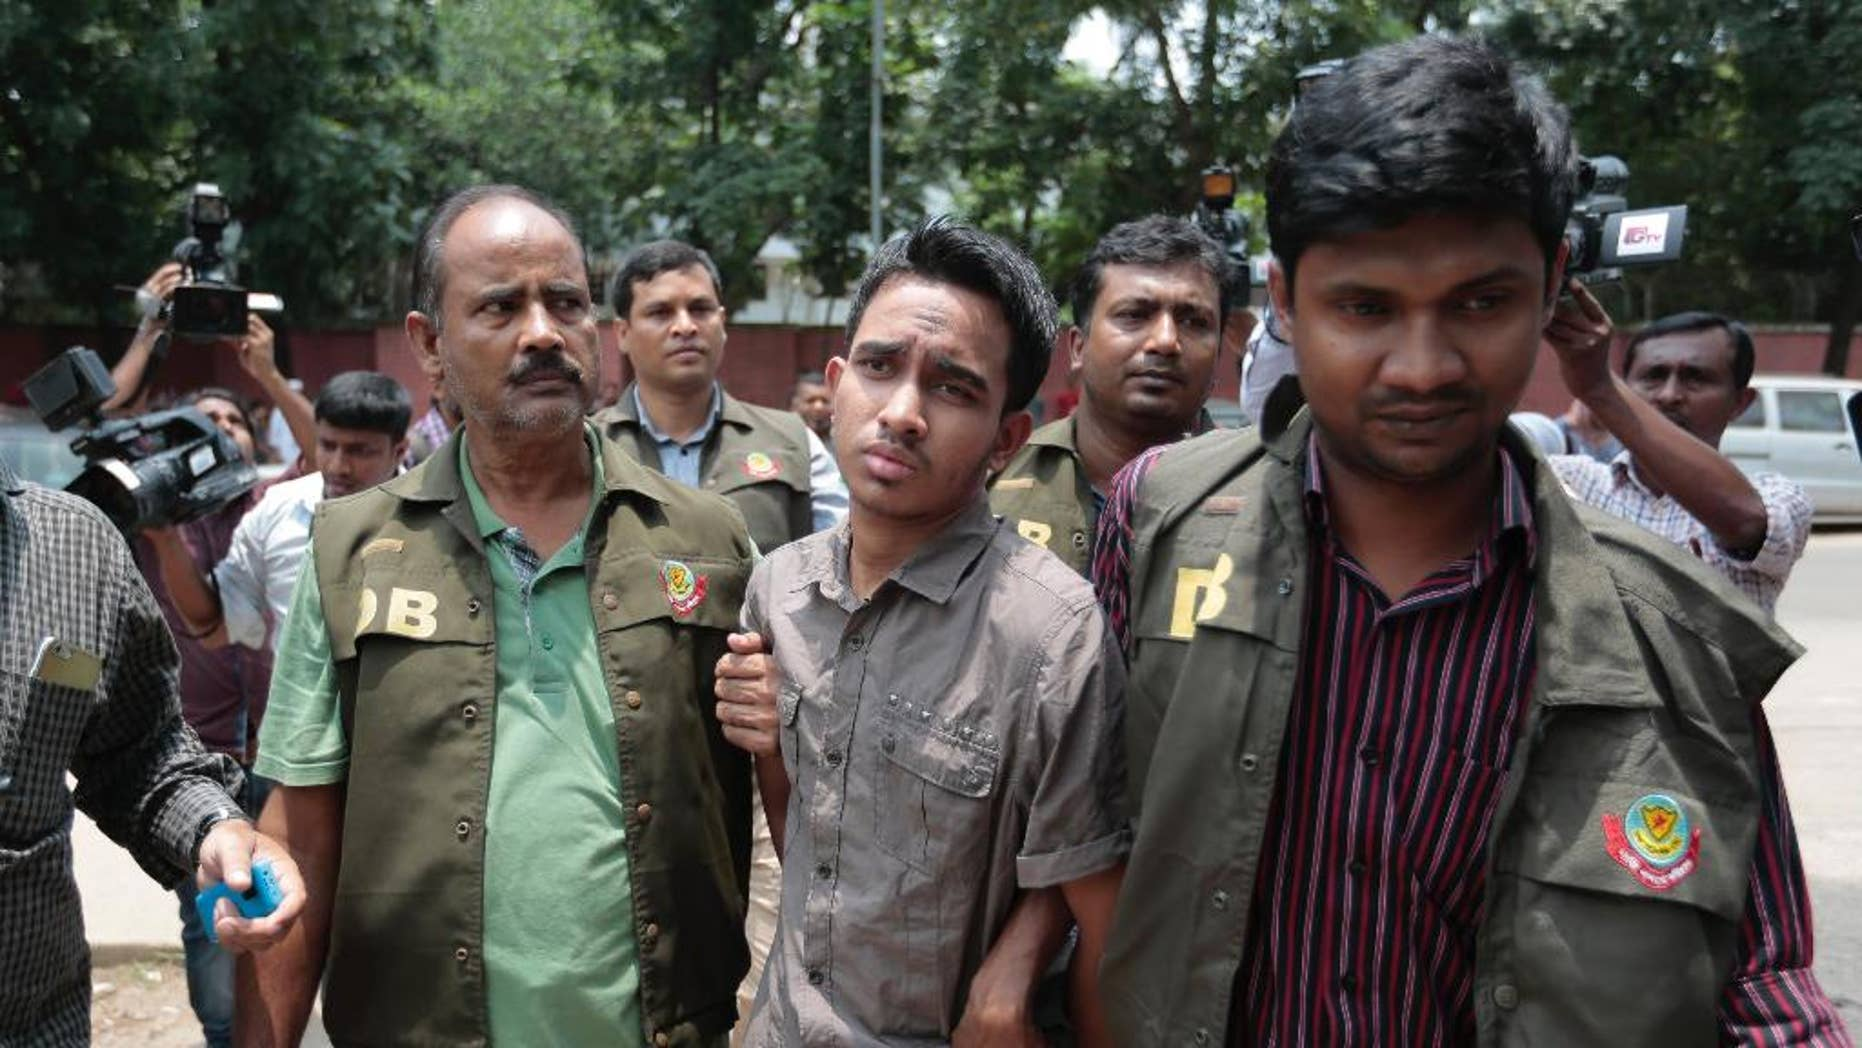 Members of Bangladesh Police Detective Branch escort Mohammed Sumon Hossain in Dhaka, Bangladesh, Thursday, June 16, 2016. Police counter-terrorism chief Monirul Islam told reporters that Hossain is charged with taking part in the October attack on publisher Ahmed Rashid Tutul who worked on books by a prominent atheist writer who was killed in a separate attack. (AP Photo)